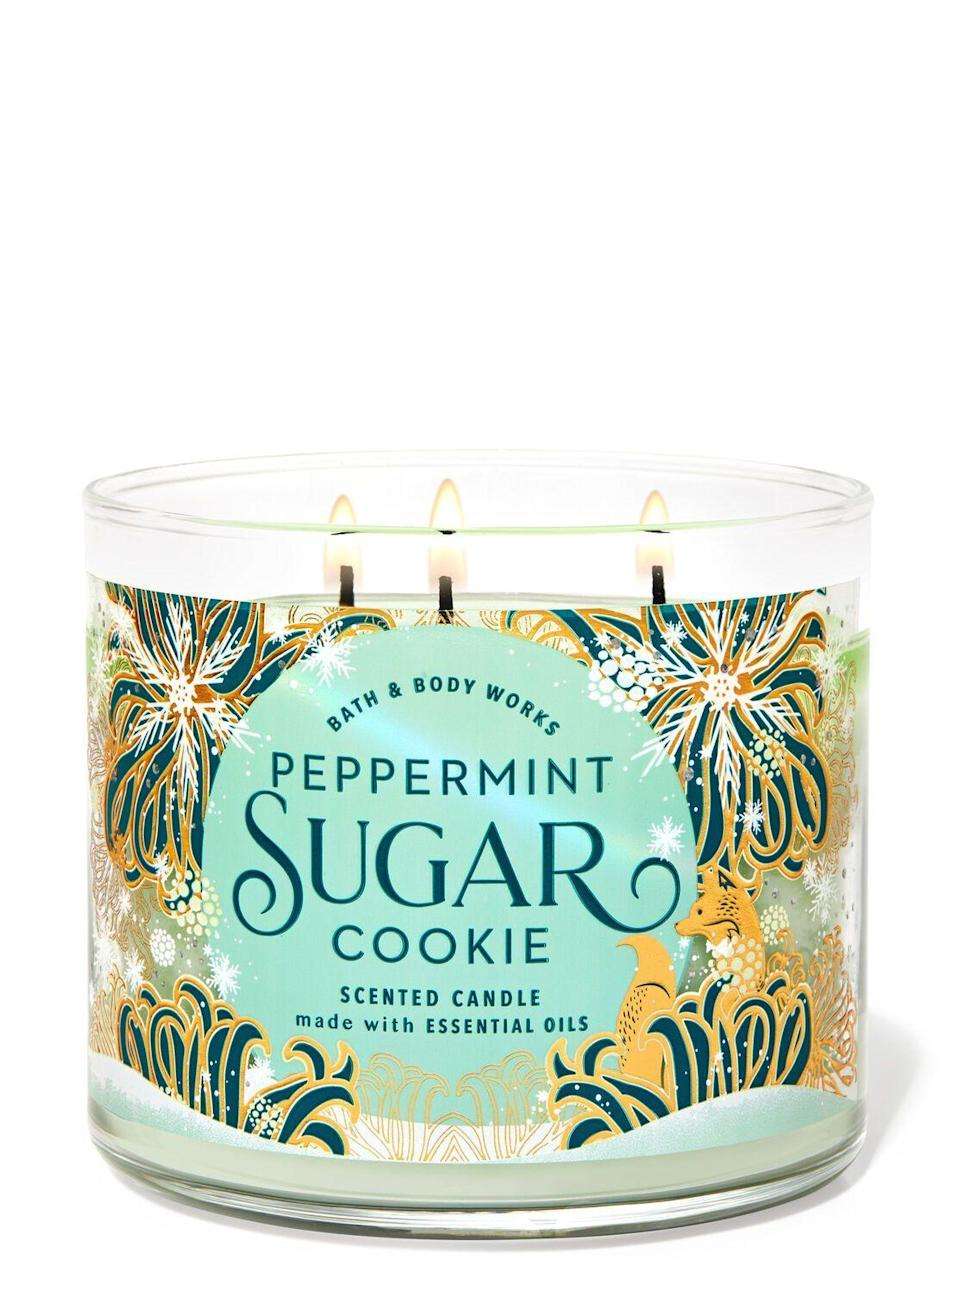 "<p><strong>Bath & Body Works</strong></p><p>bathandbodyworks.com</p><p><strong>$24.50</strong></p><p><a href=""https://www.bathandbodyworks.com/p/peppermint-sugar-cookie-3-wick-candle-026178781.html"" rel=""nofollow noopener"" target=""_blank"" data-ylk=""slk:Shop Now"" class=""link rapid-noclick-resp"">Shop Now</a></p><p>I have nothing else to say other than this smells like a mint Milano and I LIKE IT A LOT, OKAY?</p>"